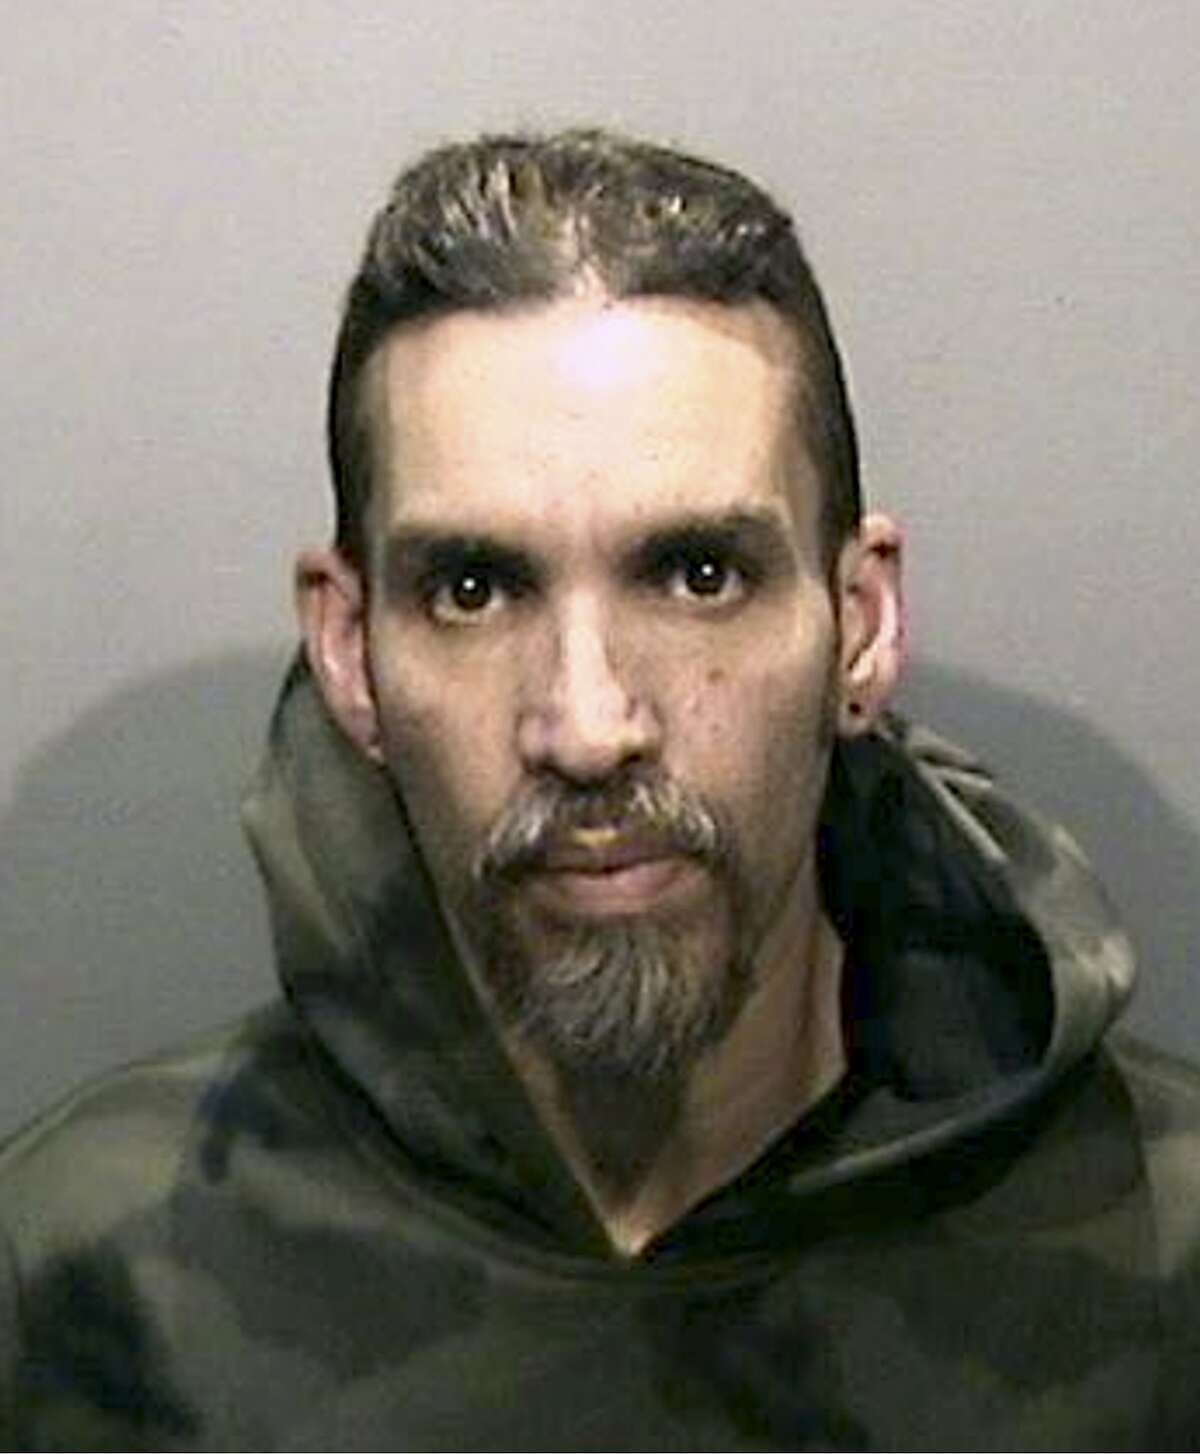 FILE--This Monday, June 5, 2017, file photo released by the Alameda County Sheriff's Office shows Derick Almena. A California judge reduced bail Friday, Aug. 4, 2017, for Almena, charged with involuntary manslaughter in connection with an Oakland warehouse fire that killed 36 people, but declined to release him on his own recognizance.. (Alameda County Sheriff's Office via AP, file)